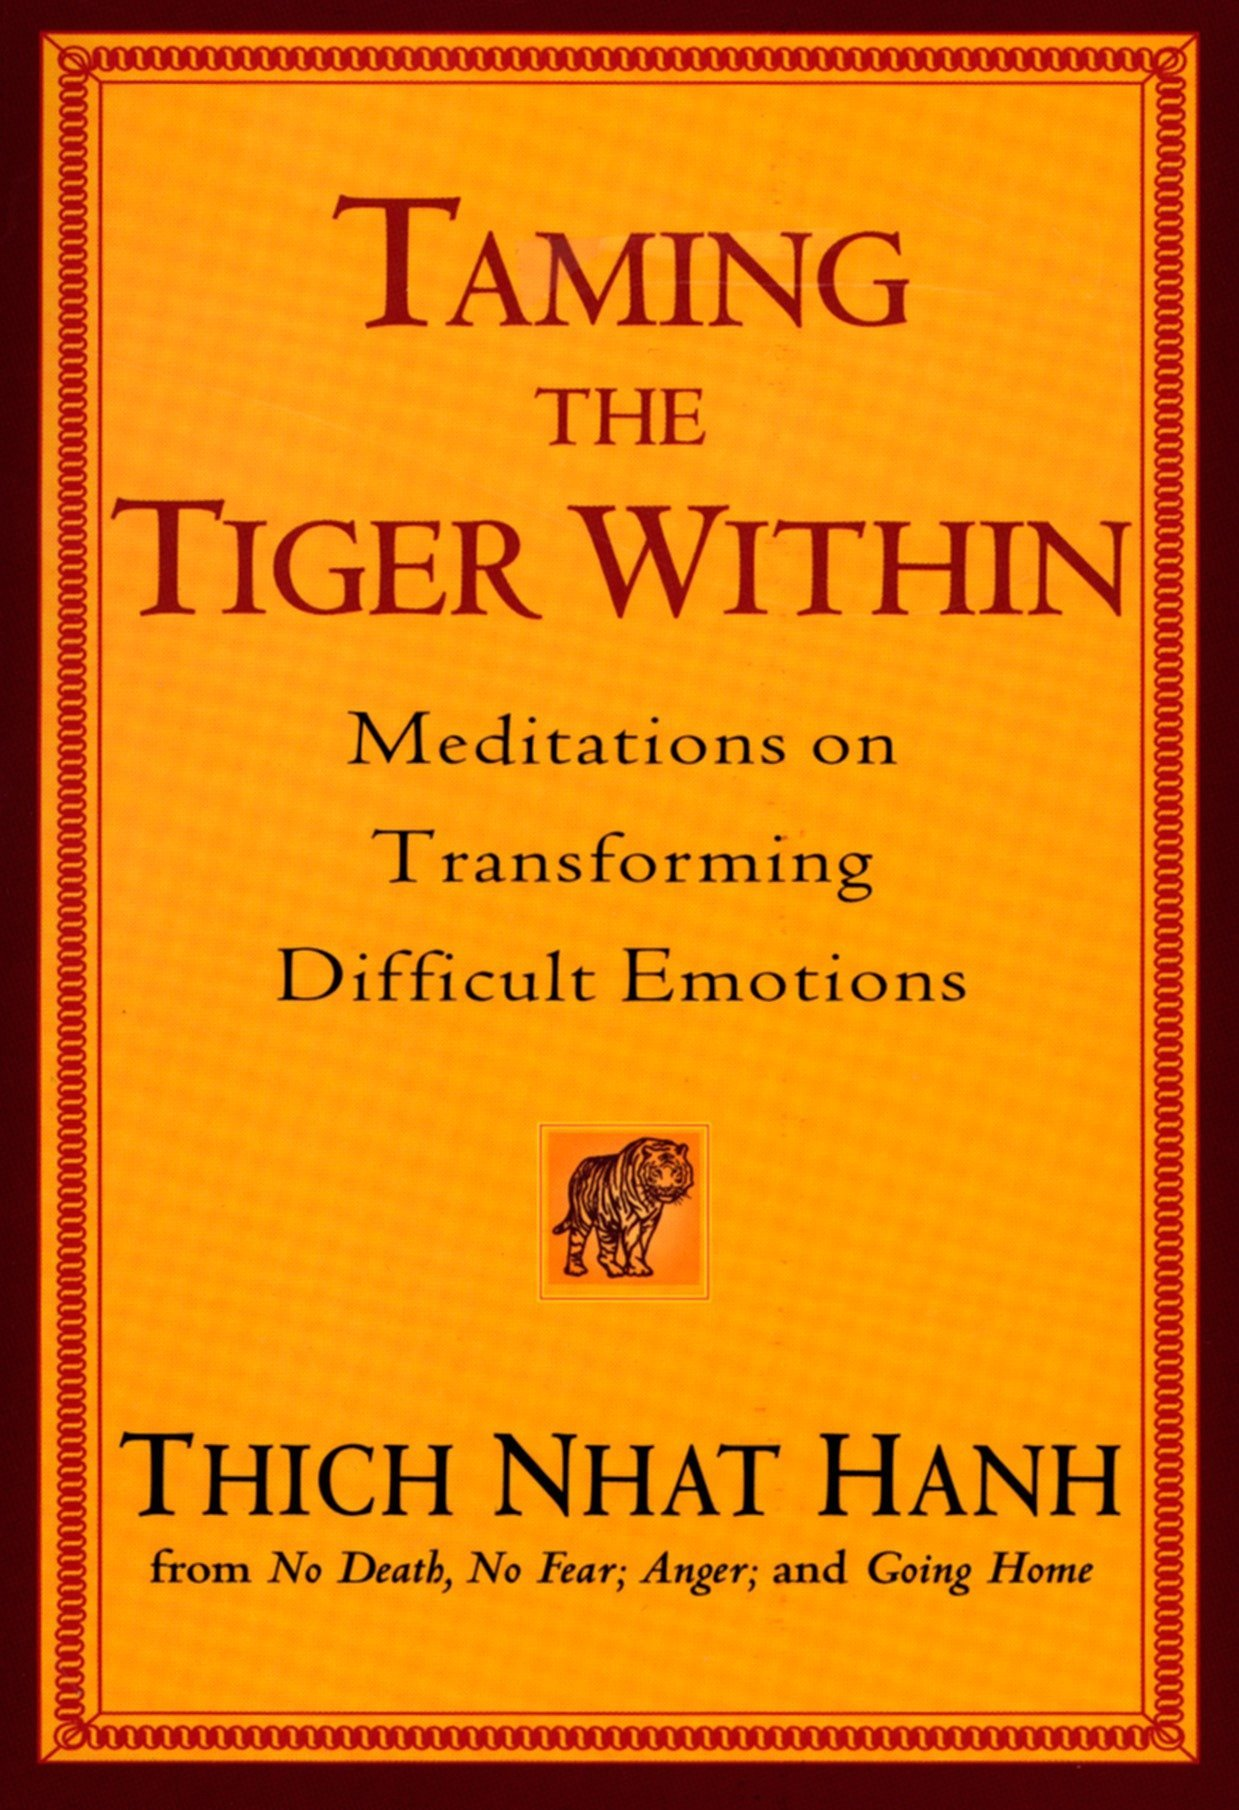 Read Online Taming the Tiger Within: Meditations on Transforming Difficult Emotions pdf epub